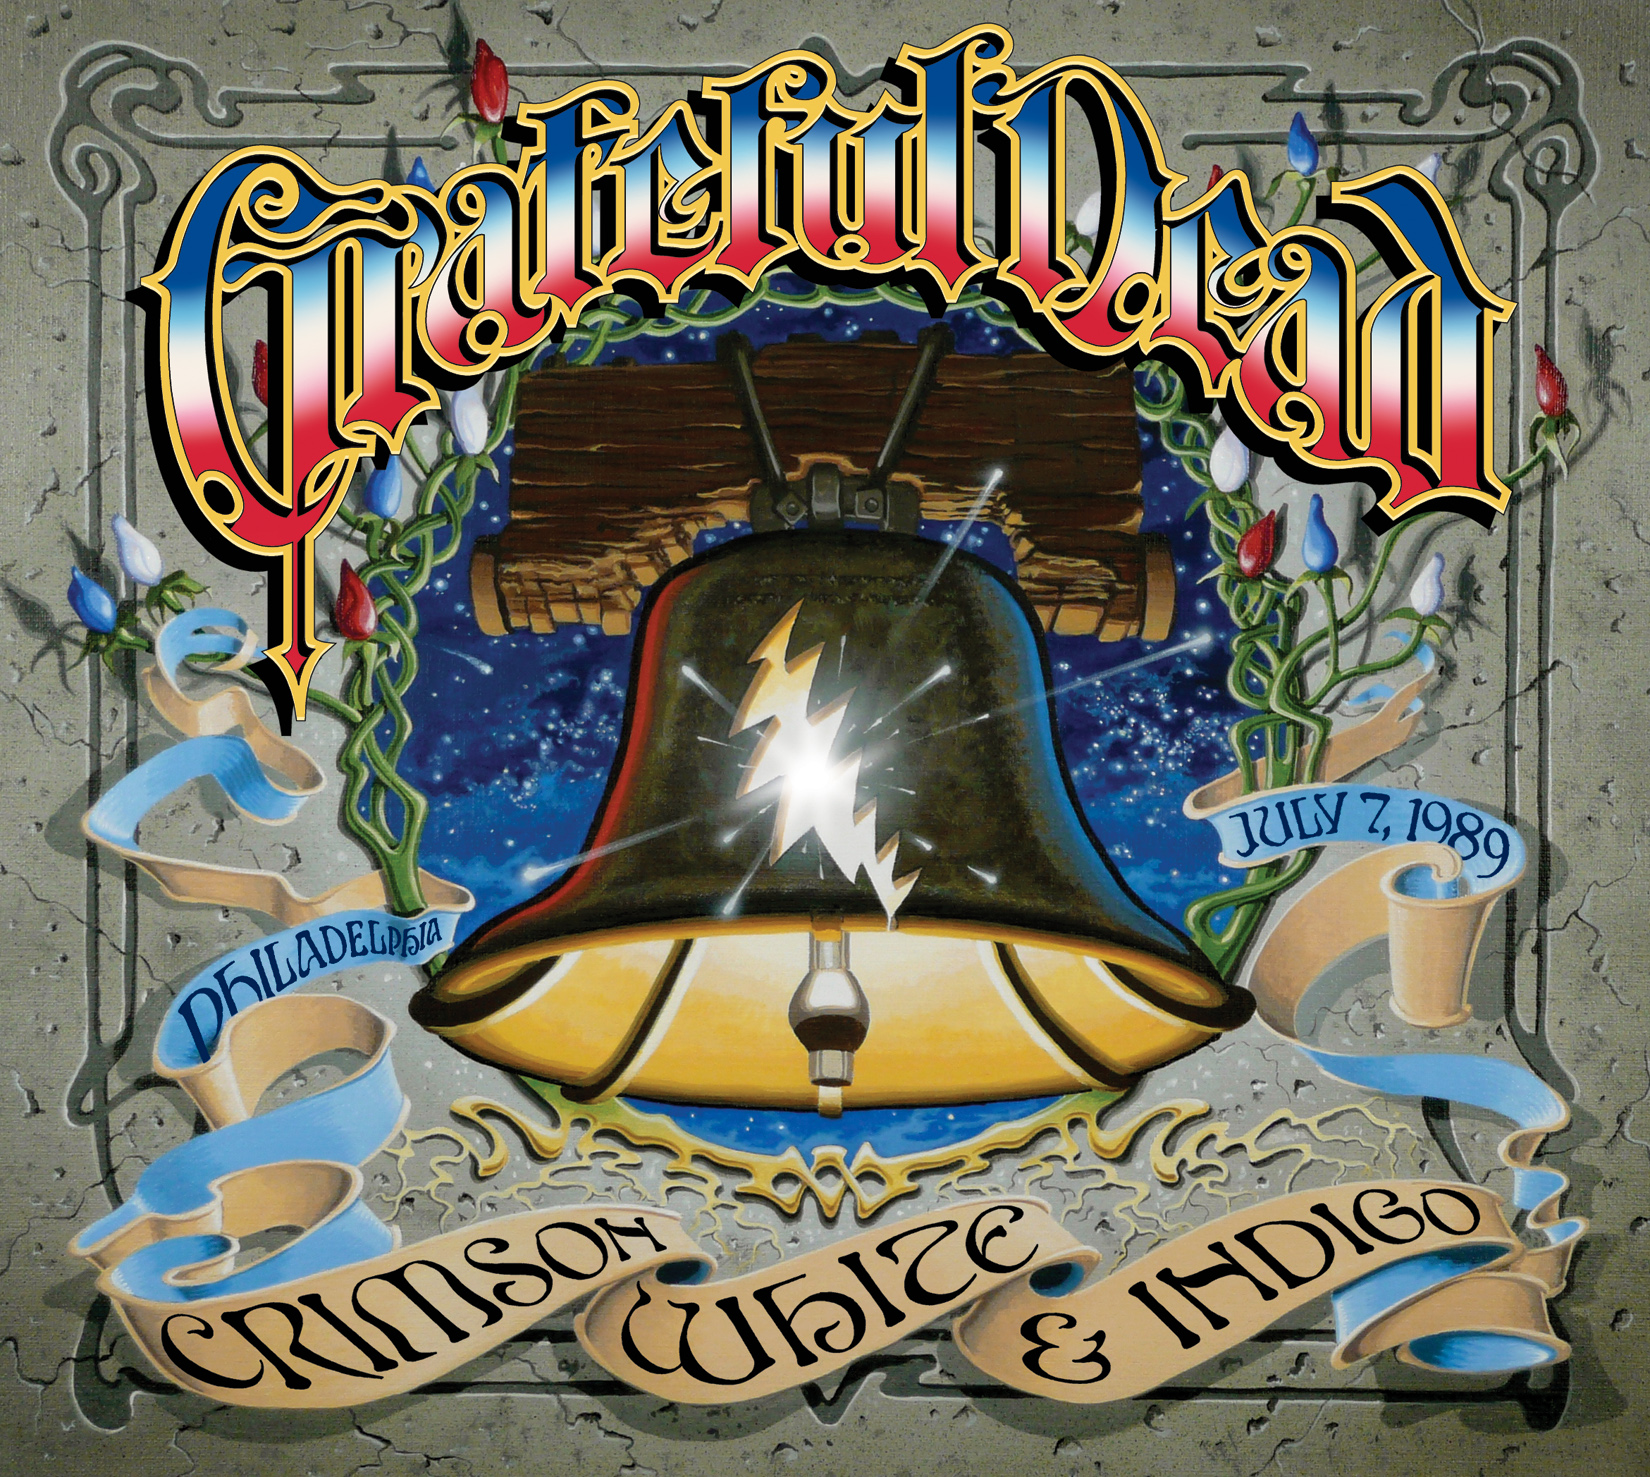 Grateful Dead Crimson White and Indigo